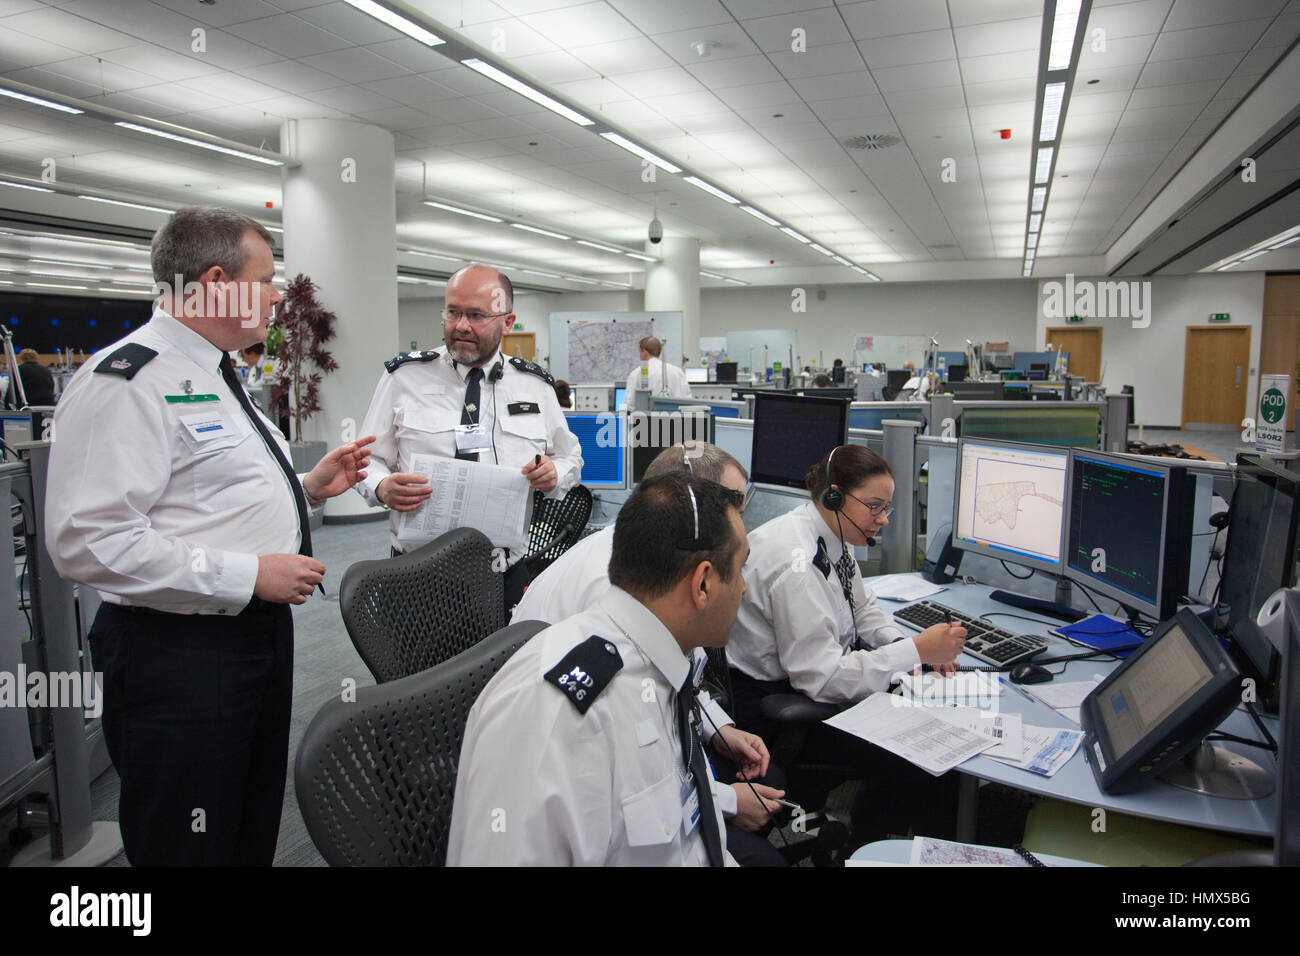 Special Operations Room Stock Photos Amp Special Operations